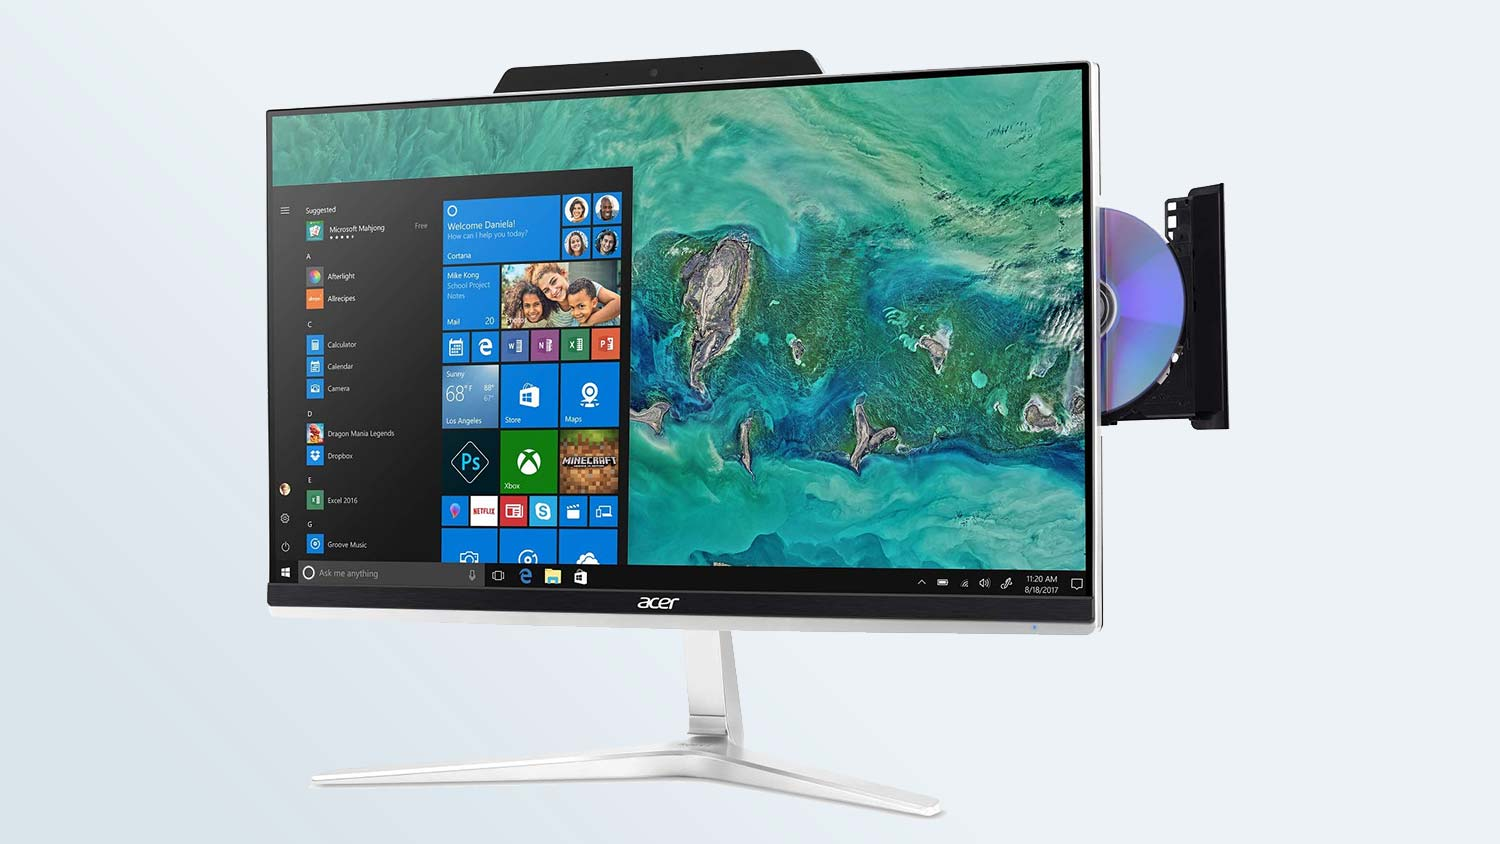 Best All-in-One Computers of 2019 - Desktop PCs for Every